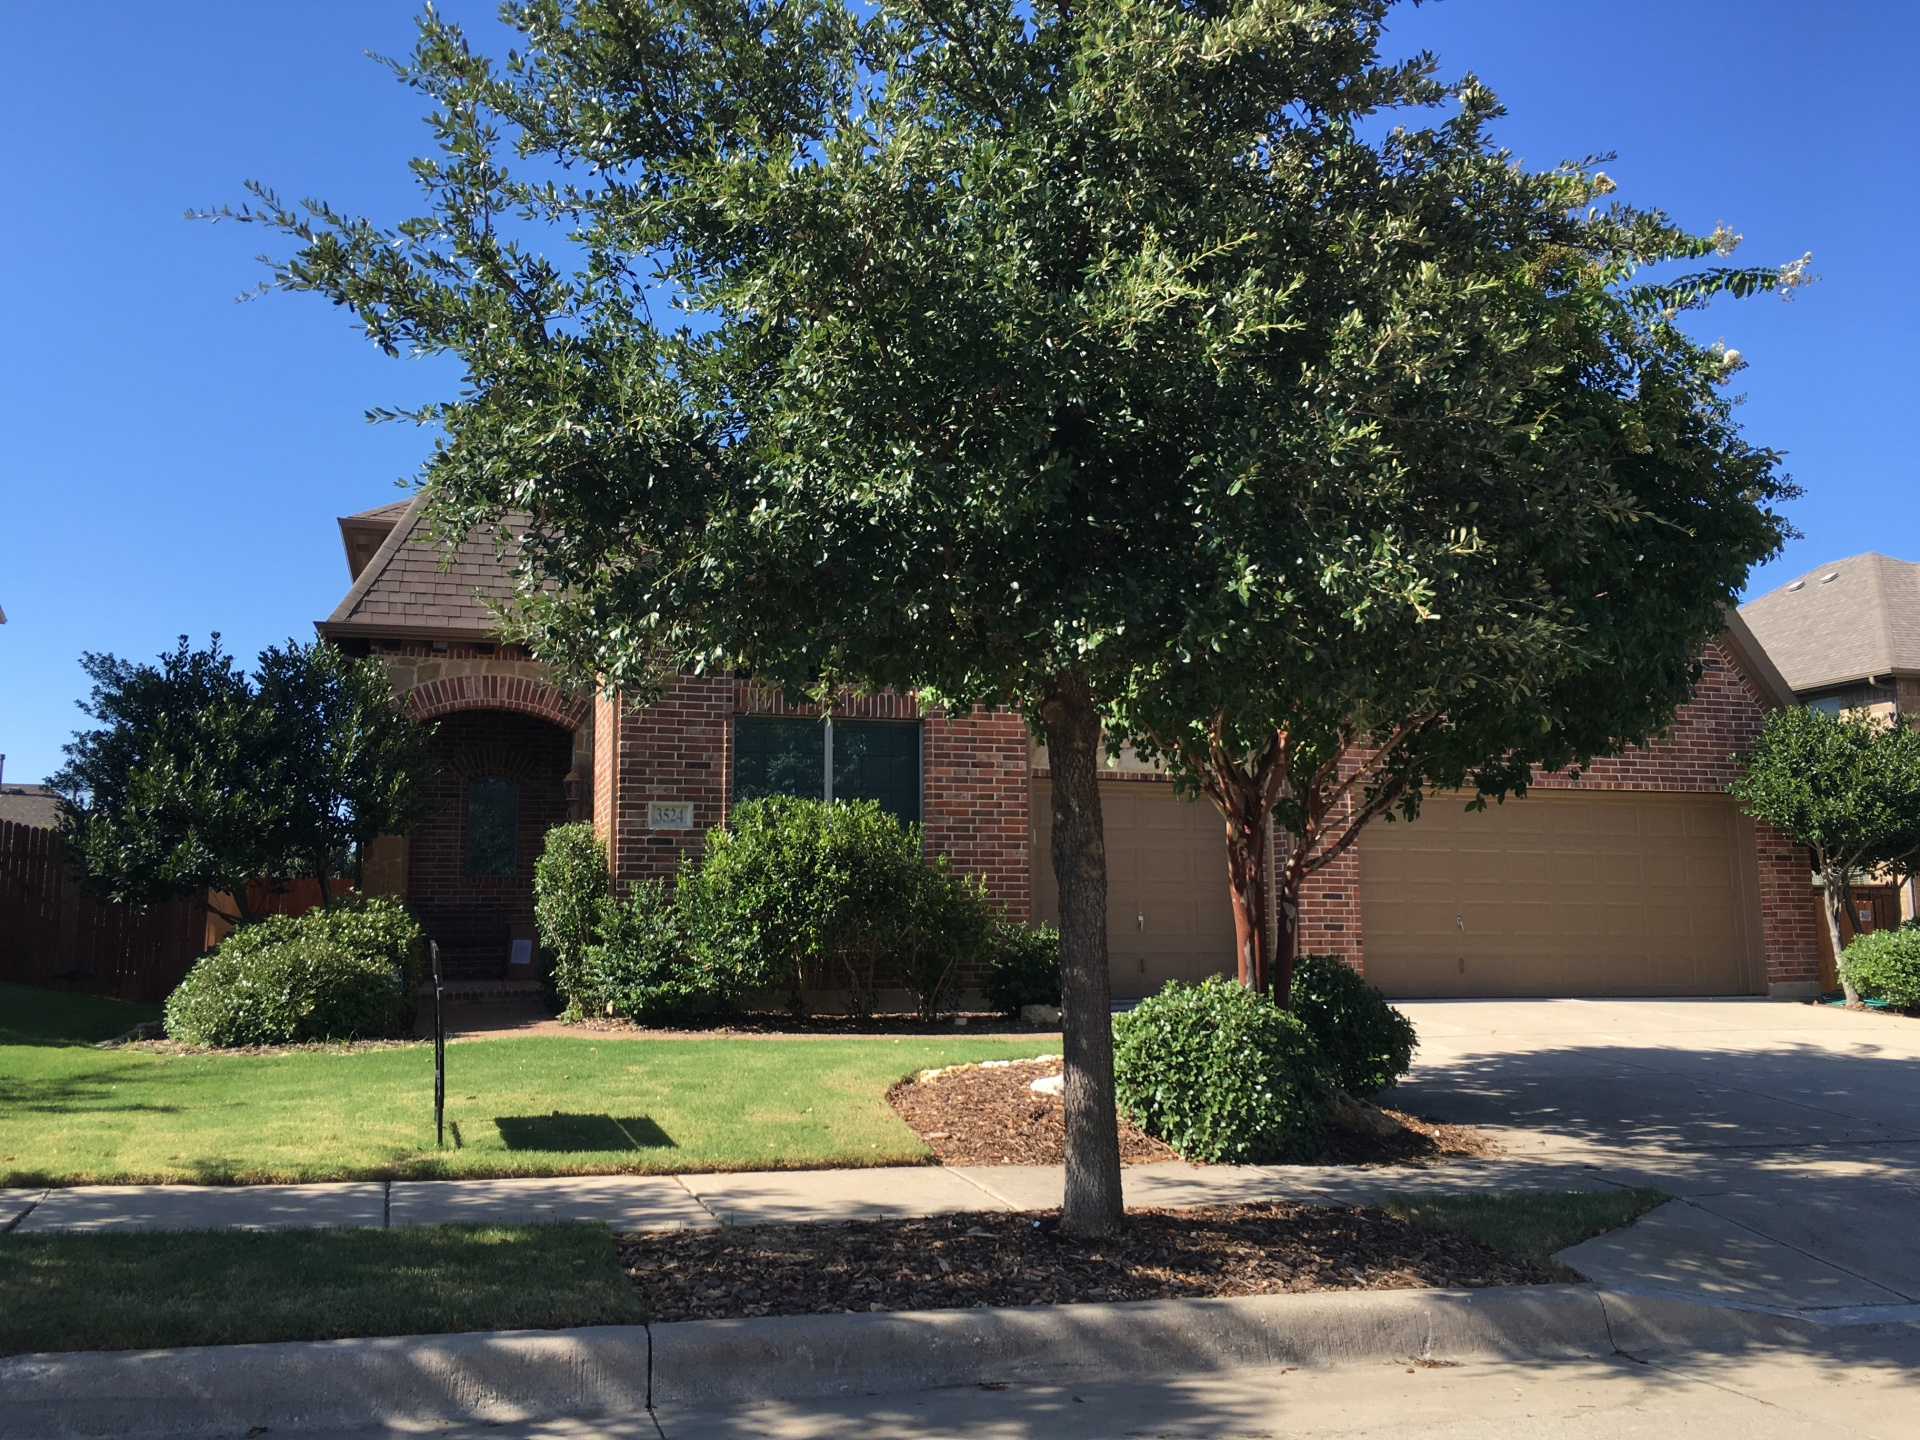 Mathews Lawn Care Arlington, Texas